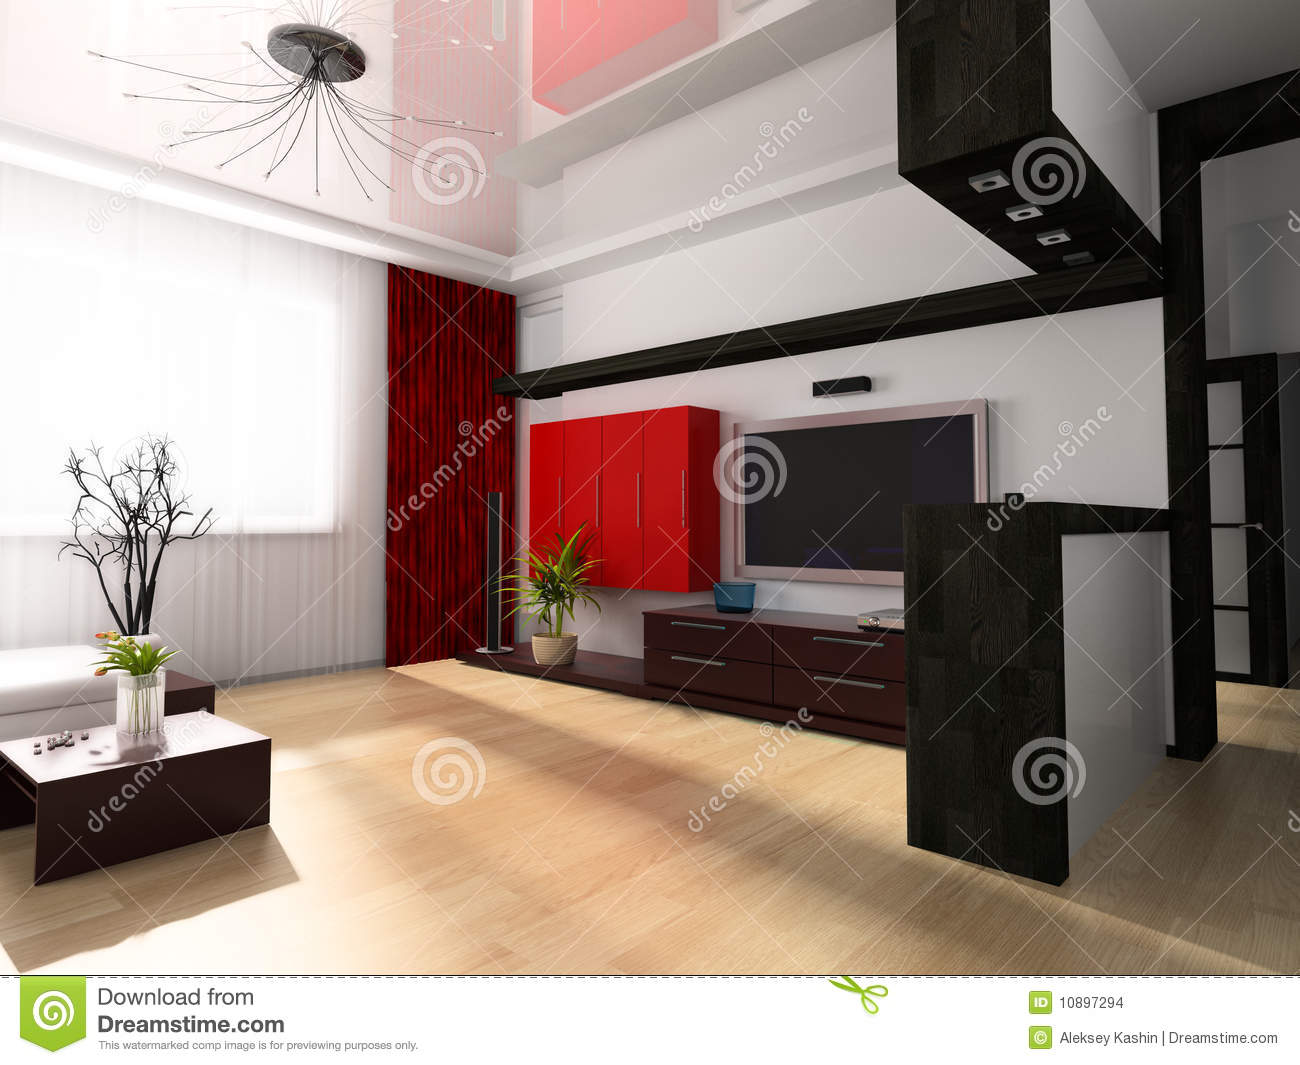 sala moderna imagenes de archivo imagen 10897294. Black Bedroom Furniture Sets. Home Design Ideas